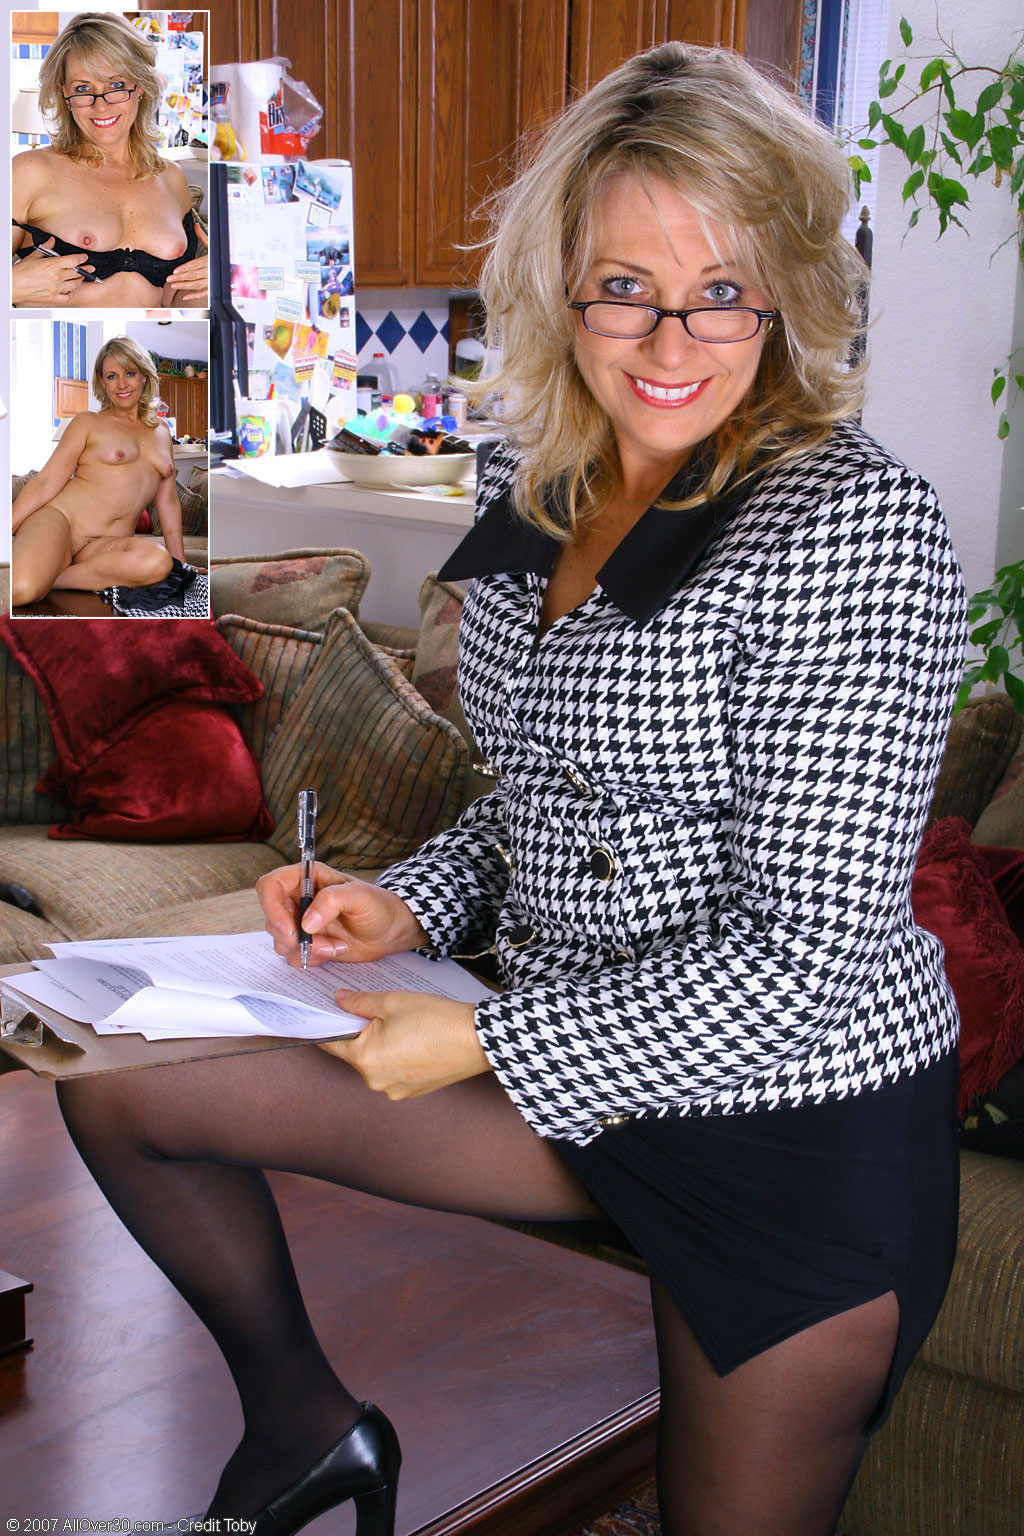 Mature pleasure over 40 leah